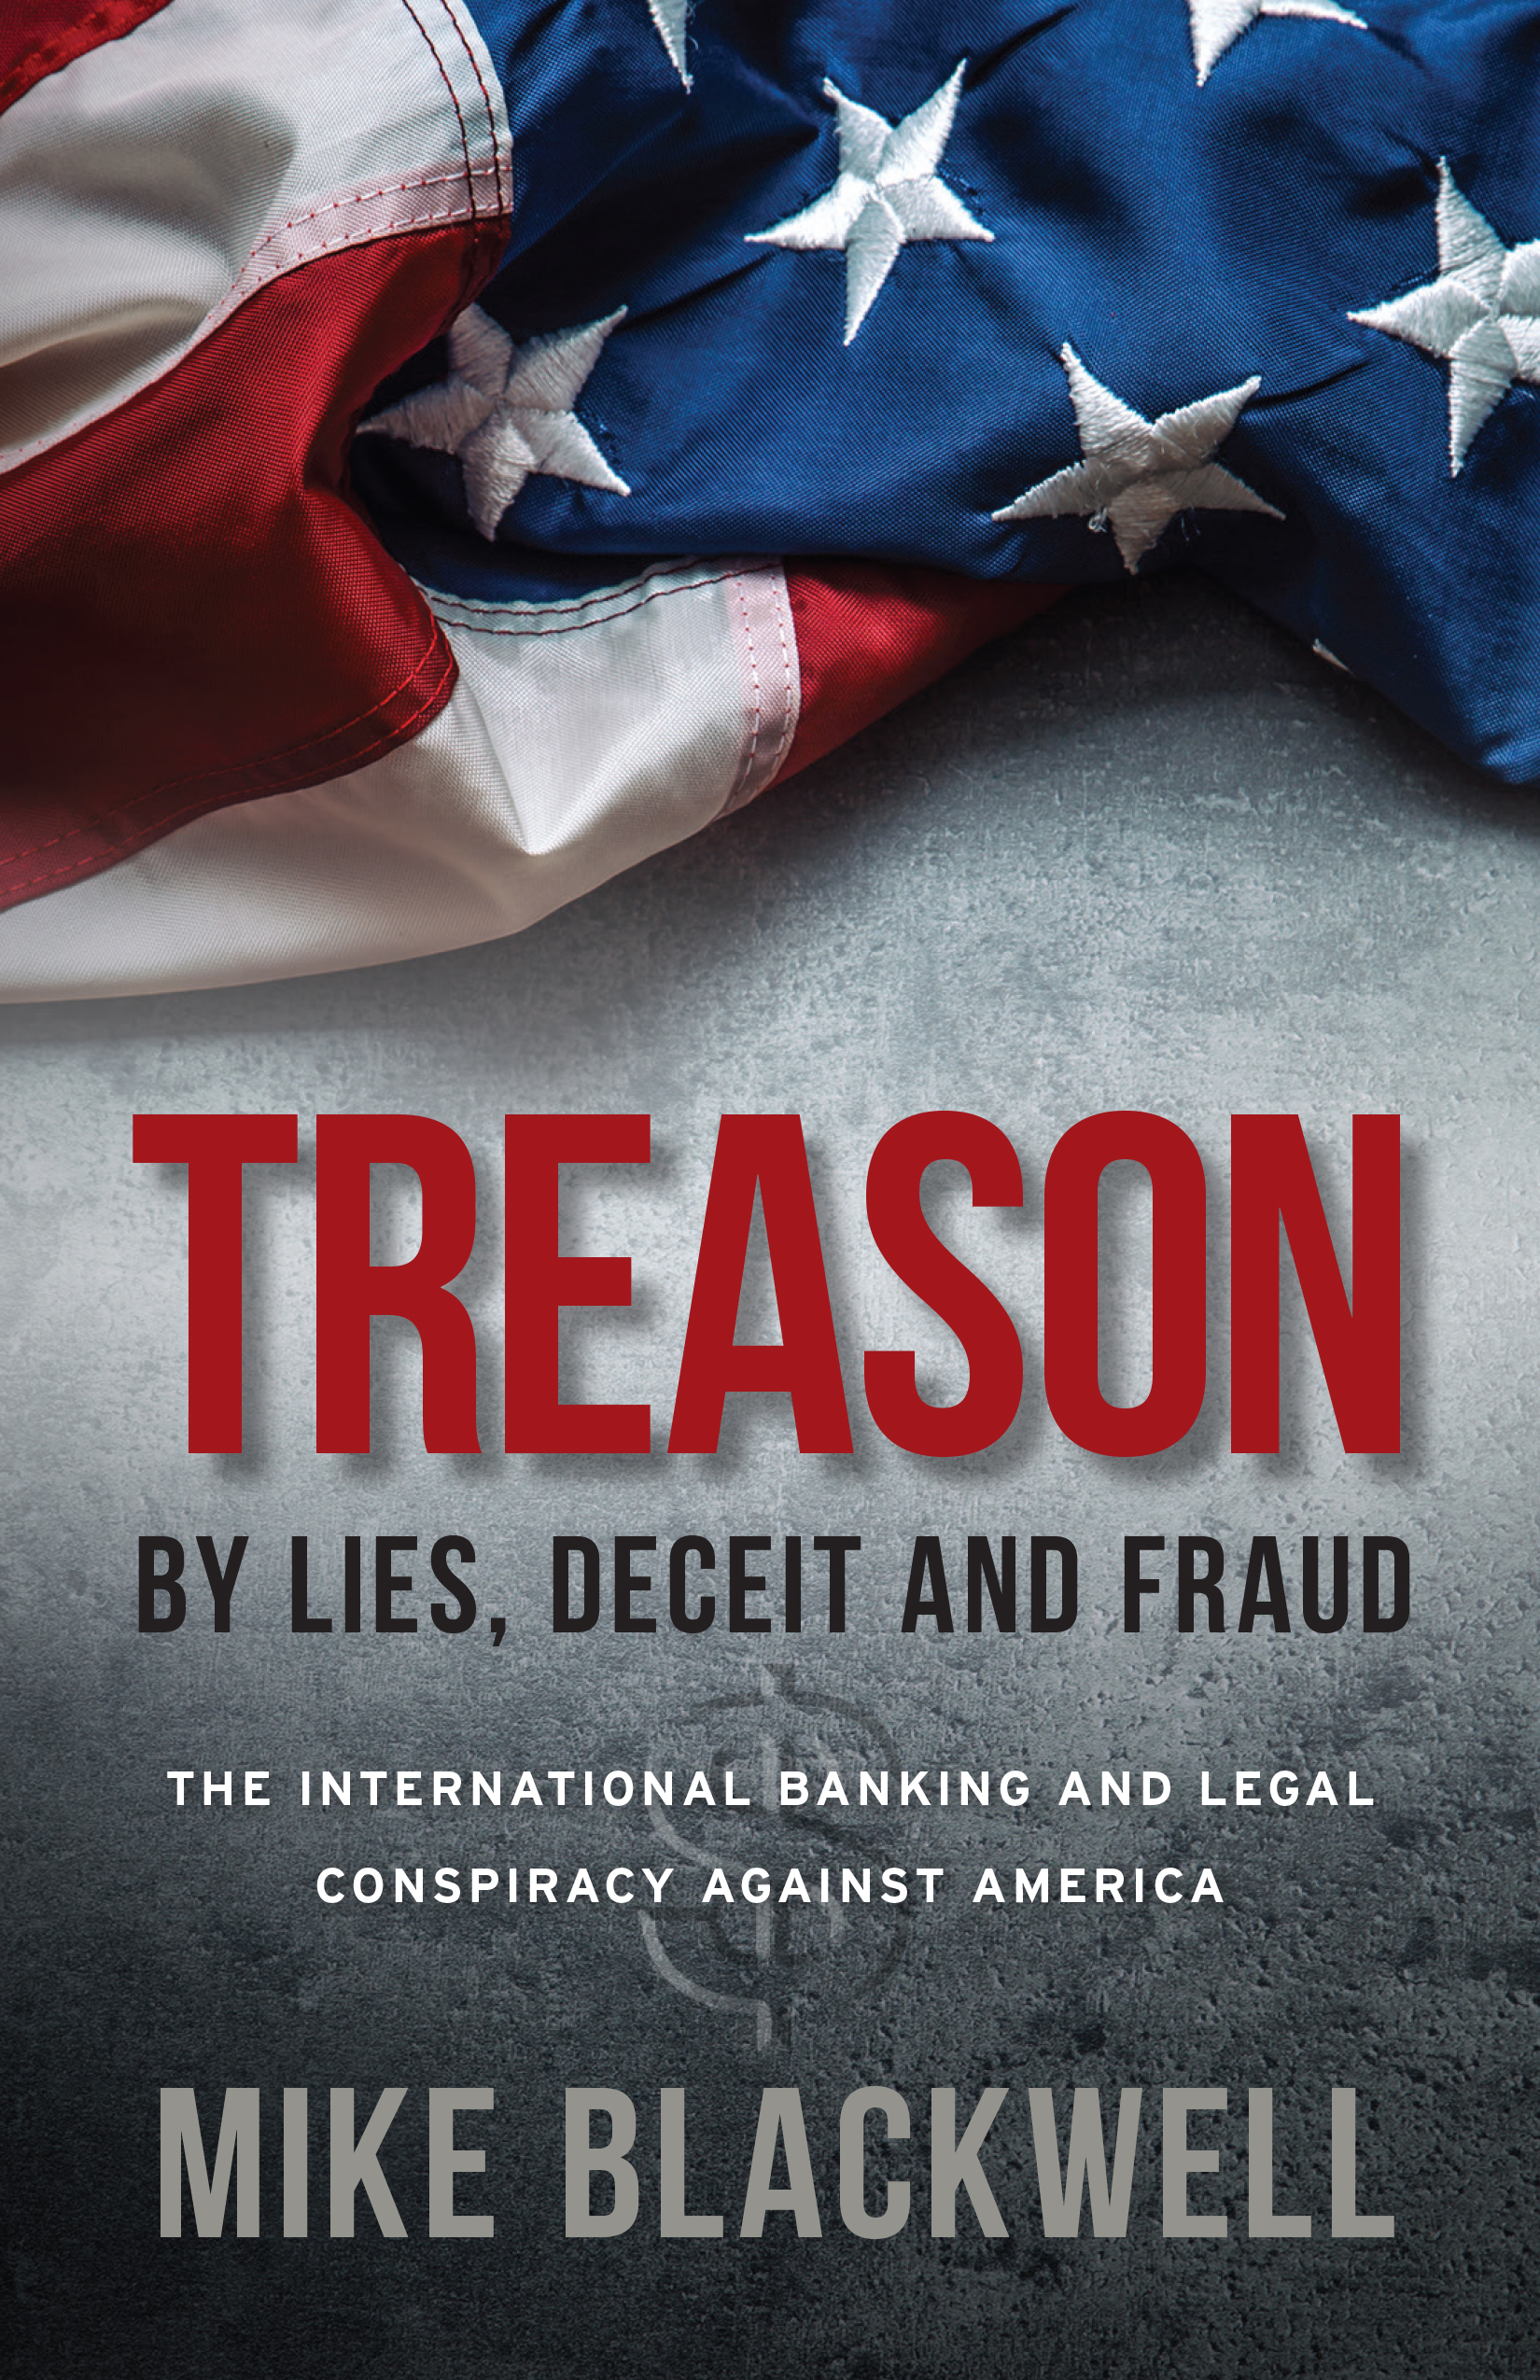 Treason By Lies, Deceit and Fraud